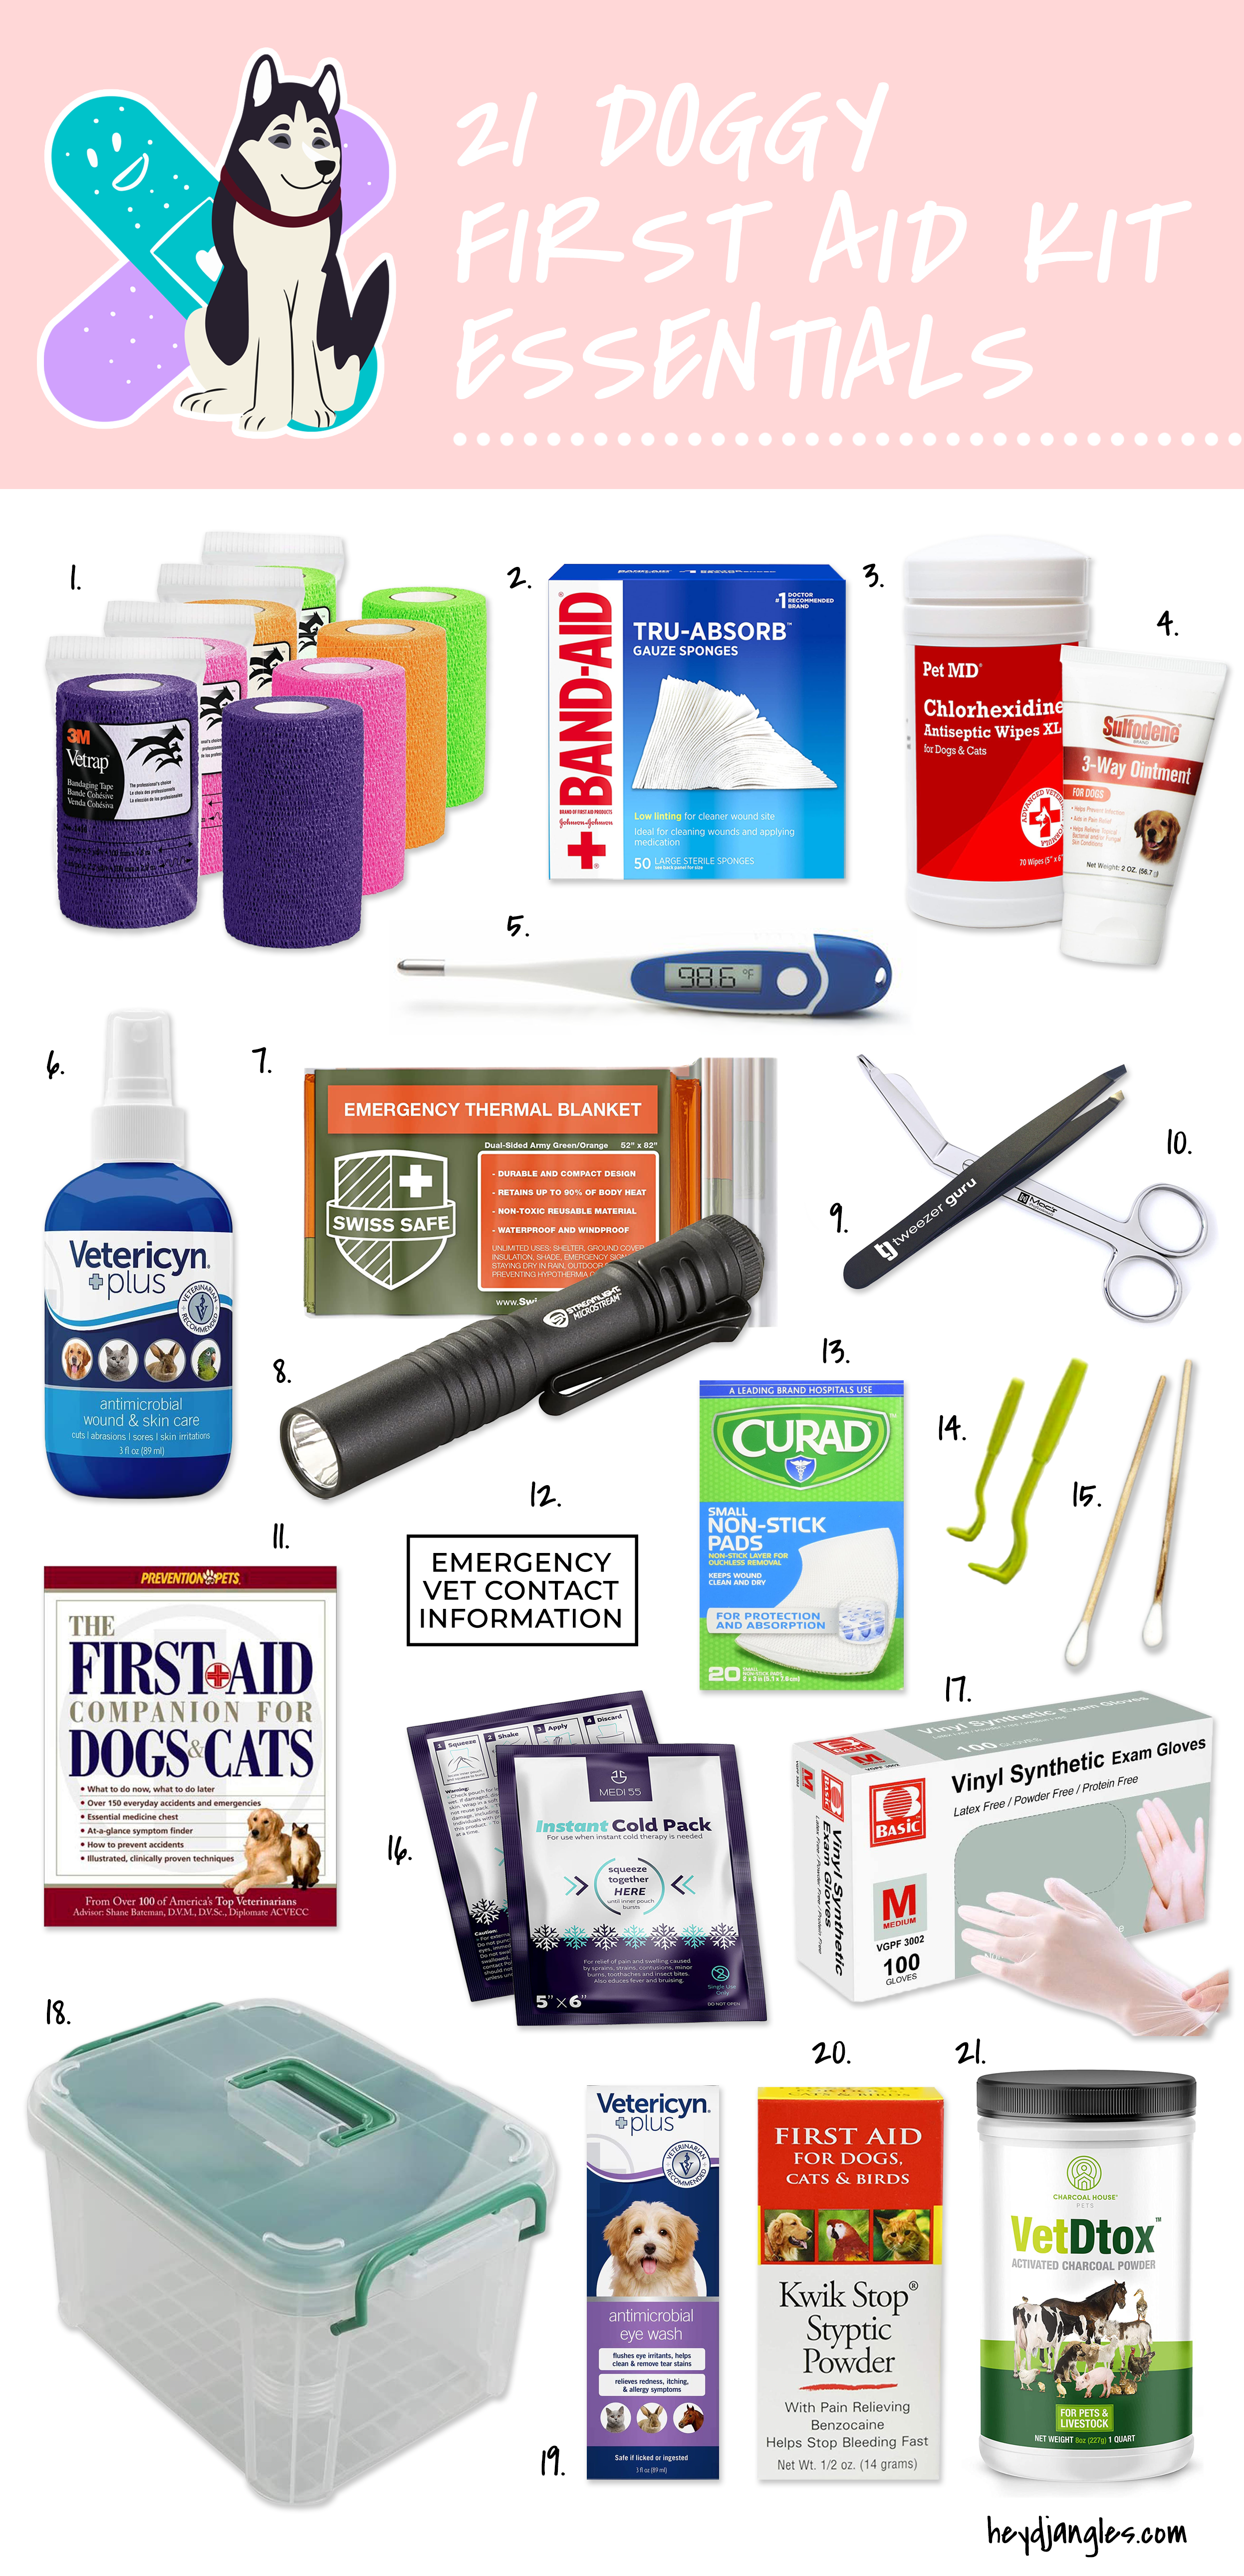 21 Doggy First Aid Kit Essentials - Hey, Djangles. First aid kit for dogs, dog first aid kit essentials.